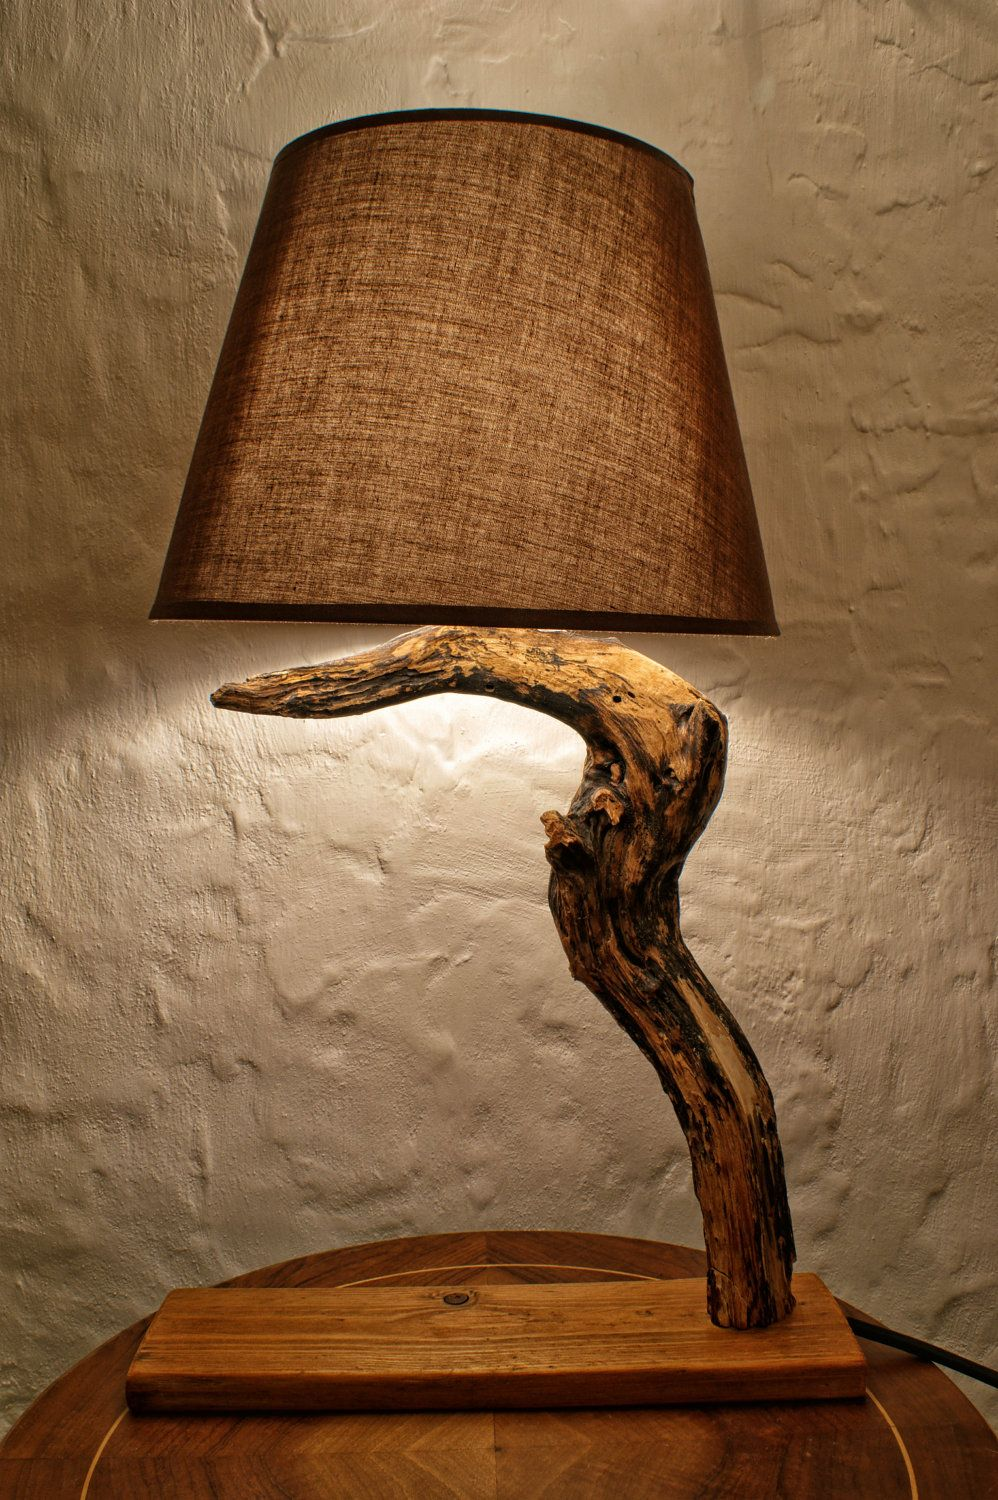 lights lamps wood handcrafted desk id lamp oblic table